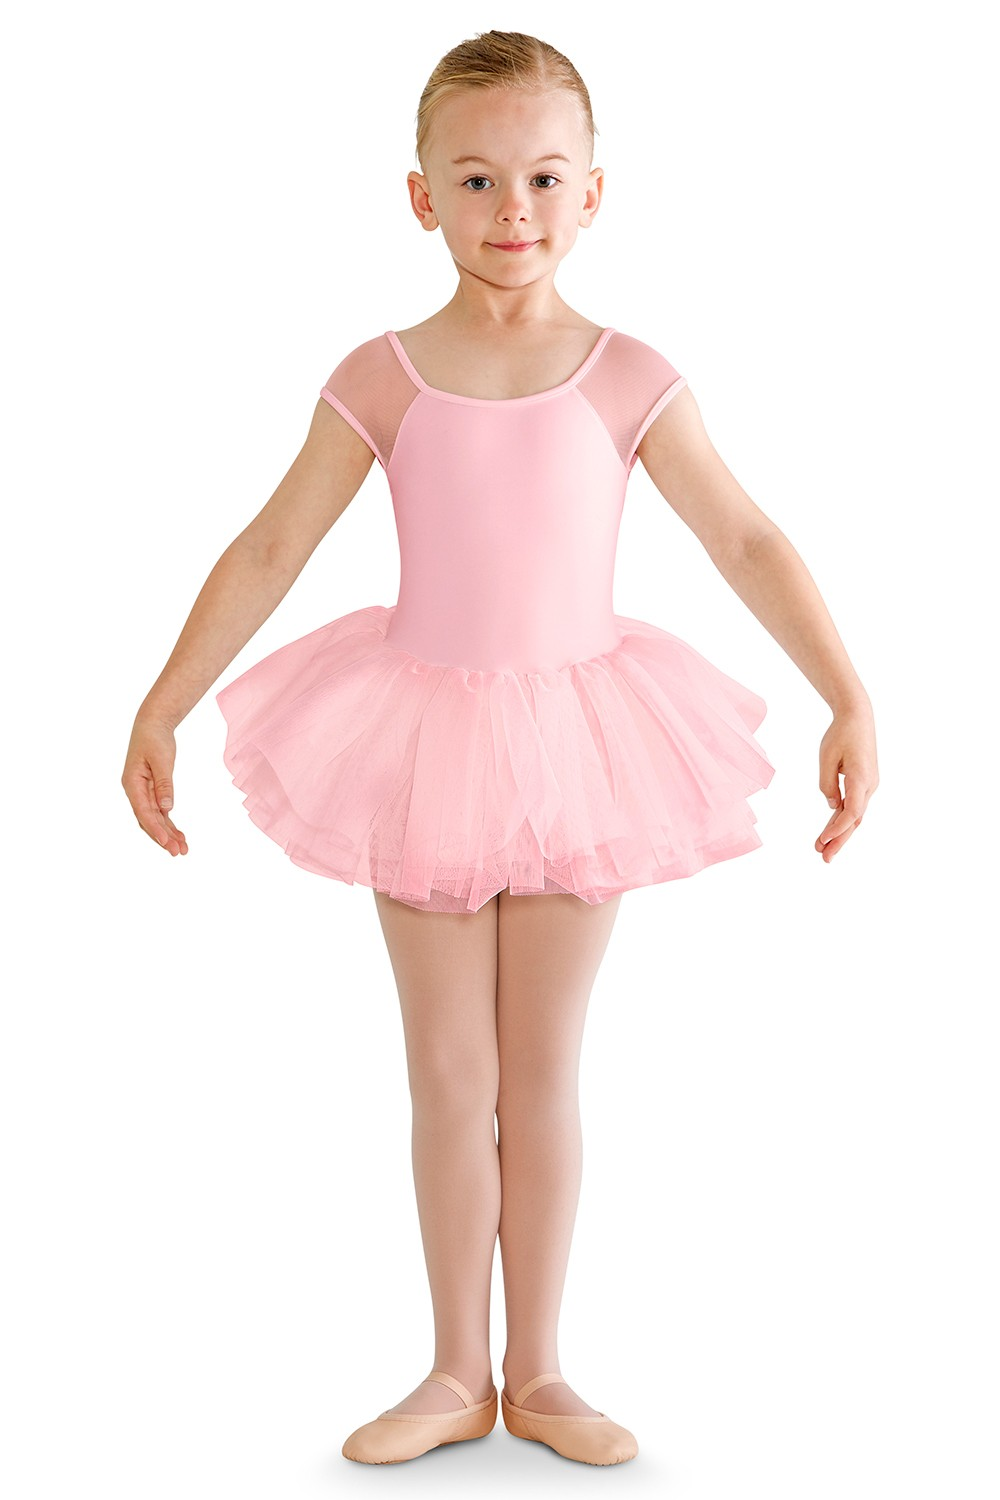 Benoit Children's Dance Leotards